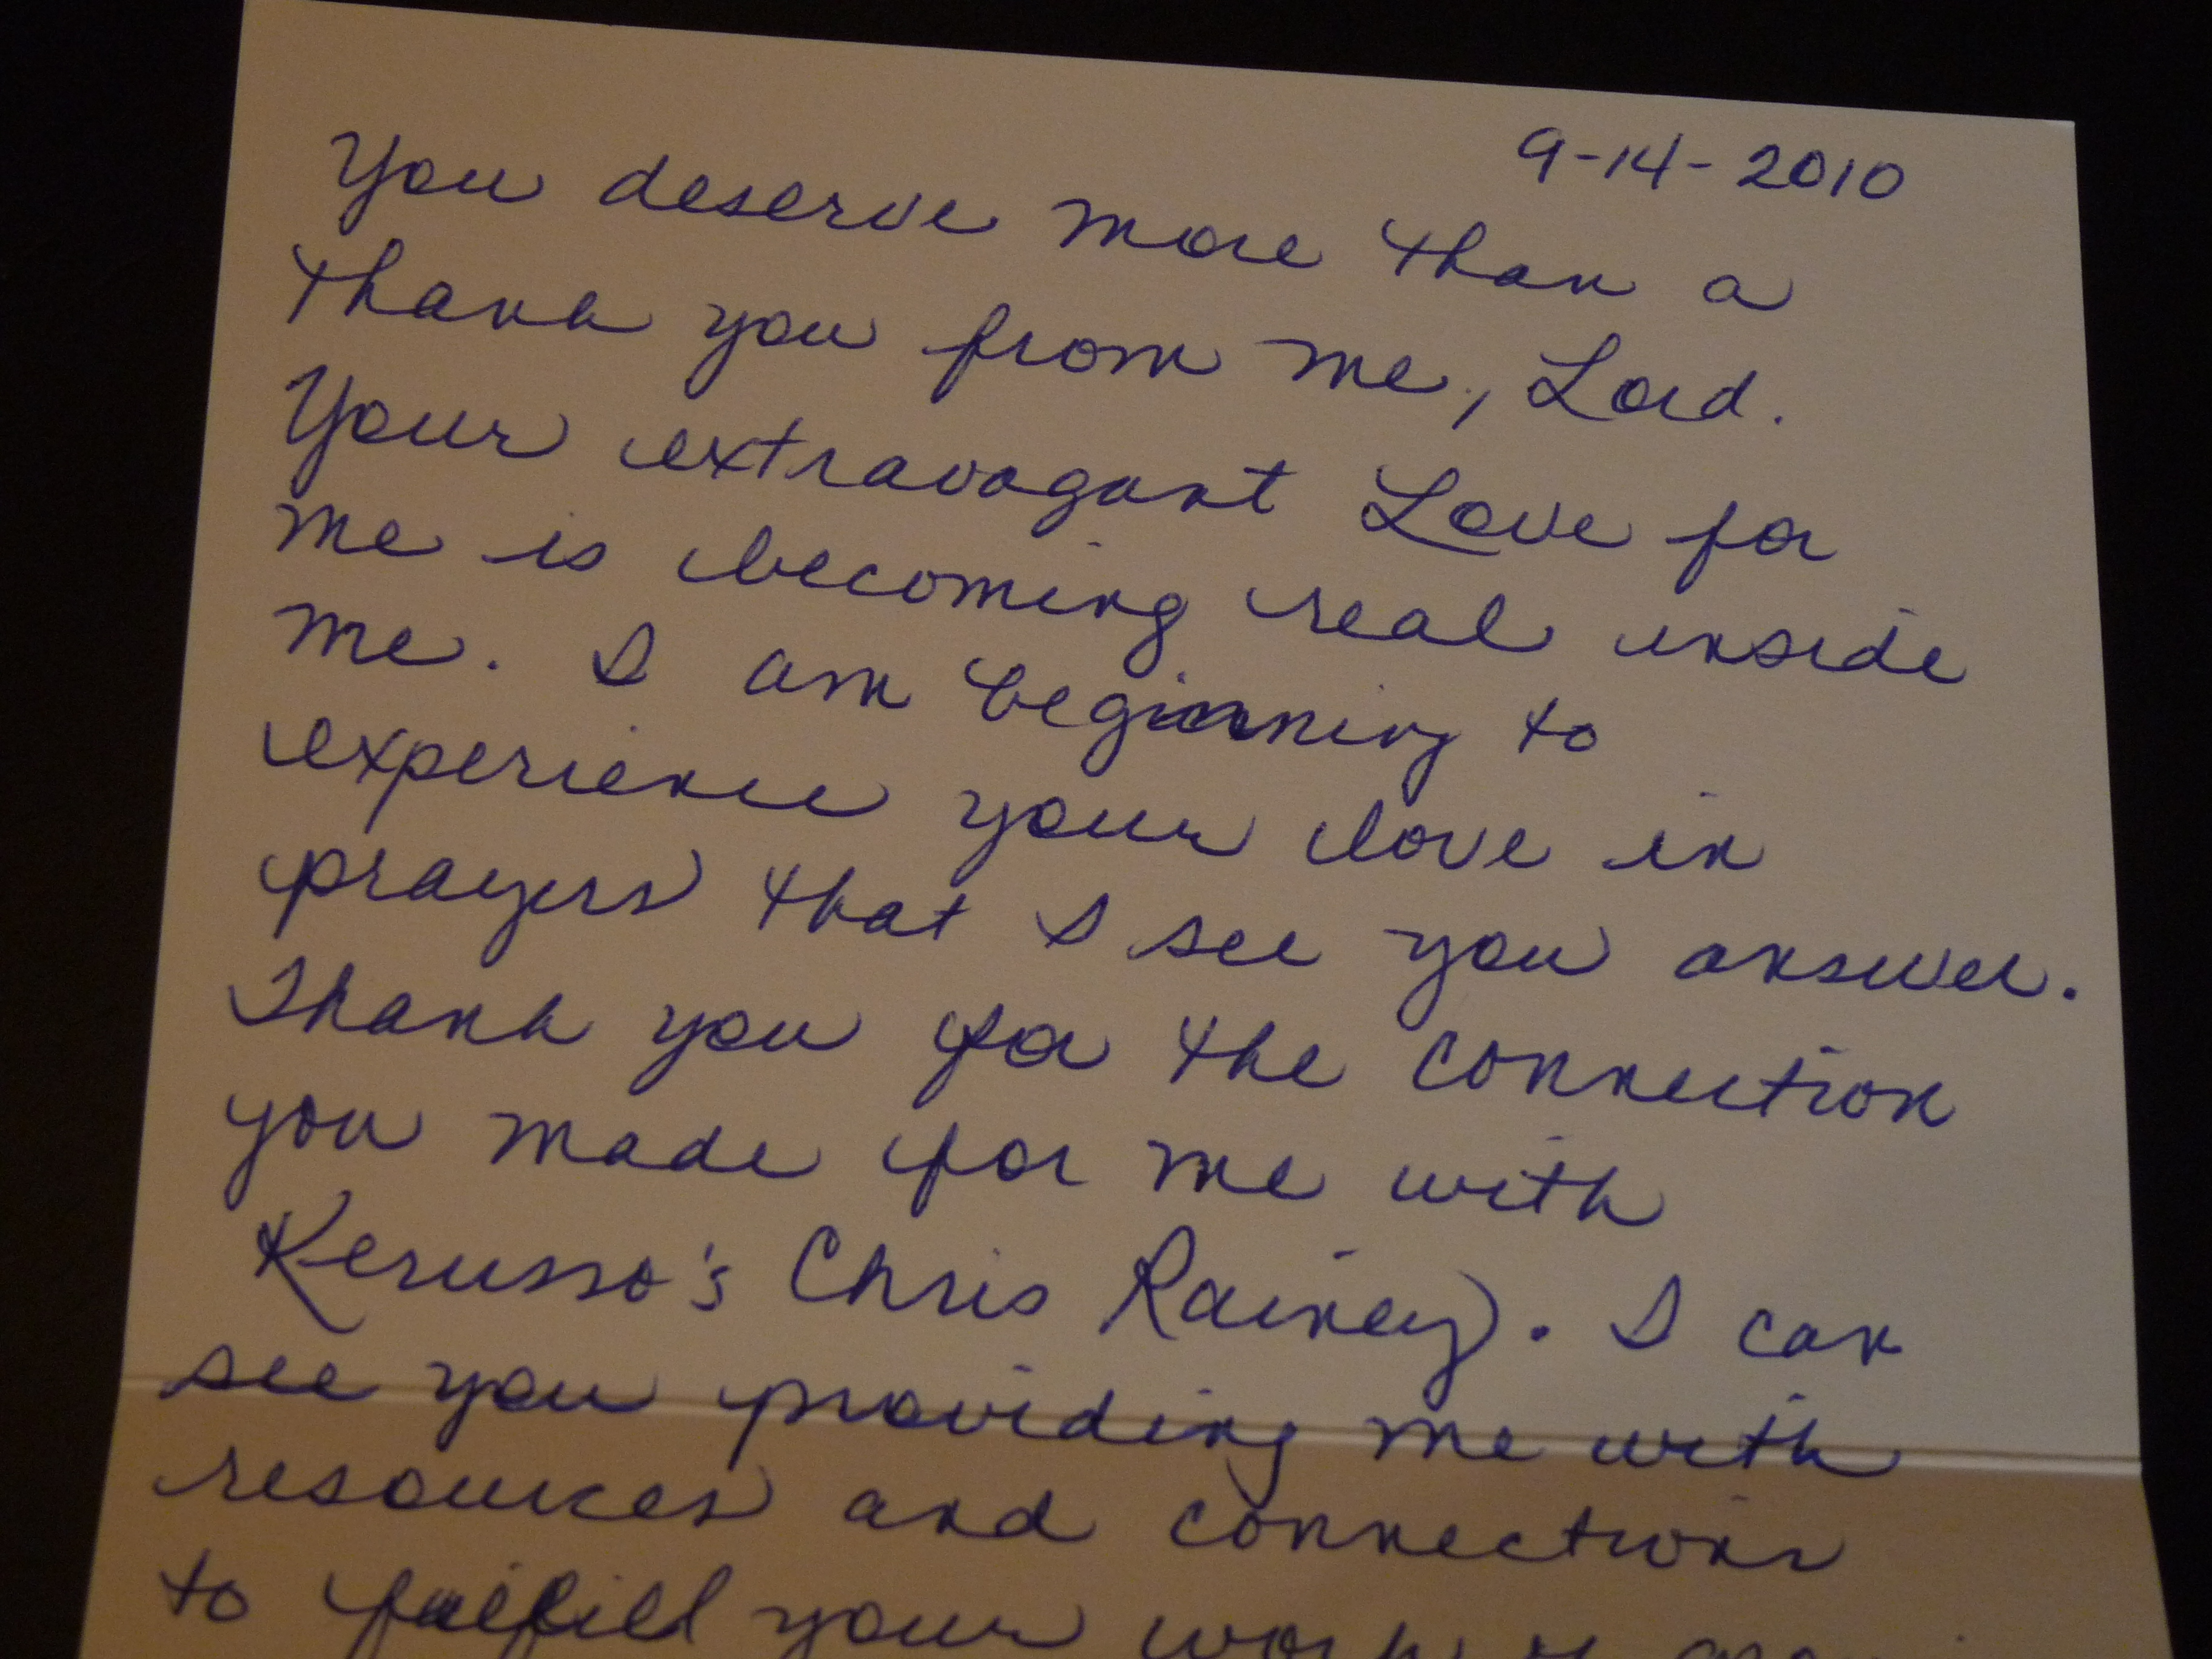 thank you note response to extravagant gifts